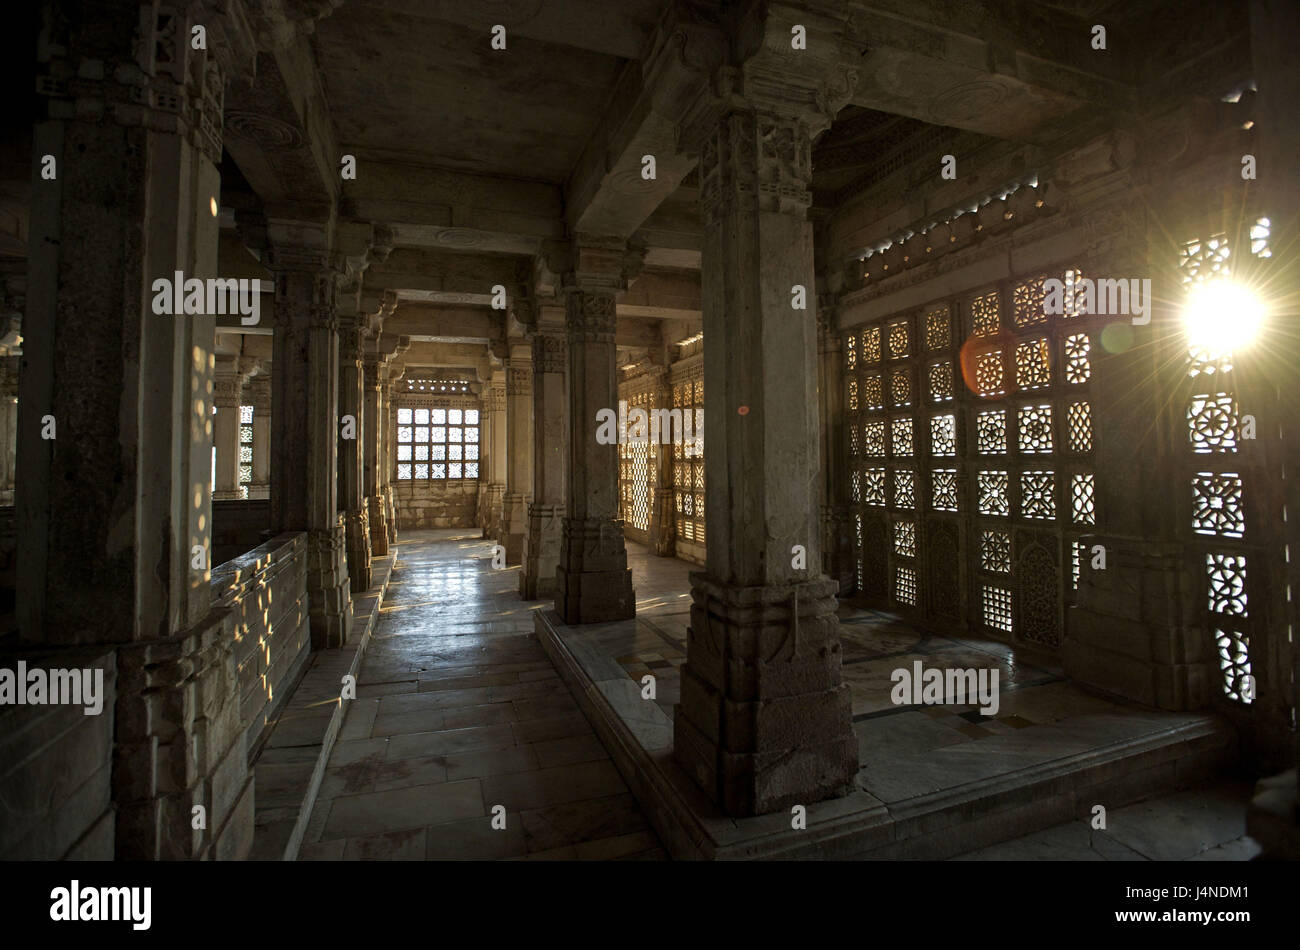 India, Gujarat, Ahmedabad, Sarkhej, mausoleum of the sultan, - Stock Image